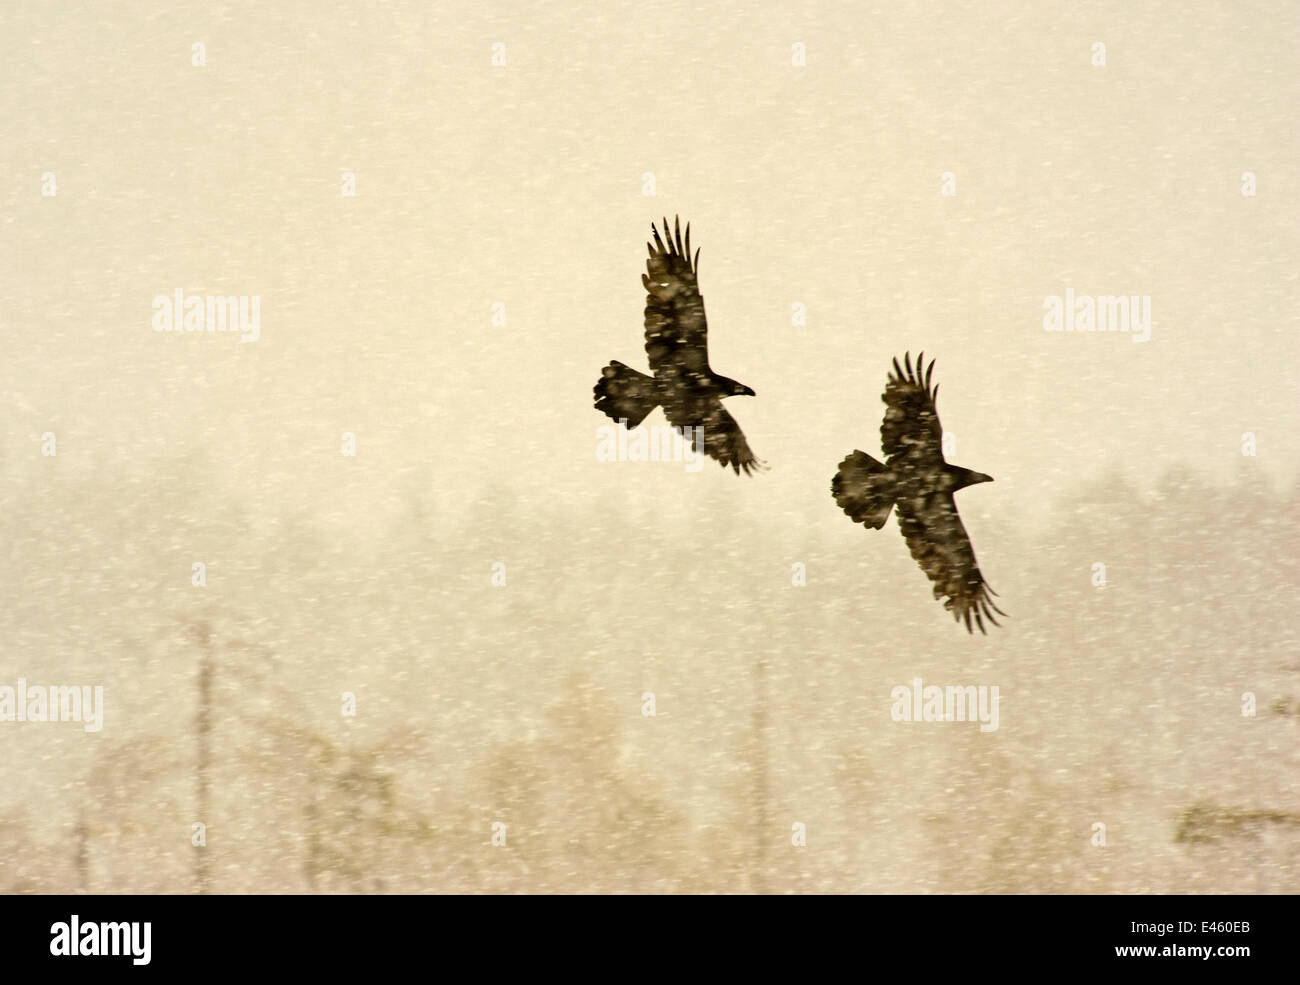 Two Common ravens (Corvus corax) in flight through snow, Finland, April - Stock Image